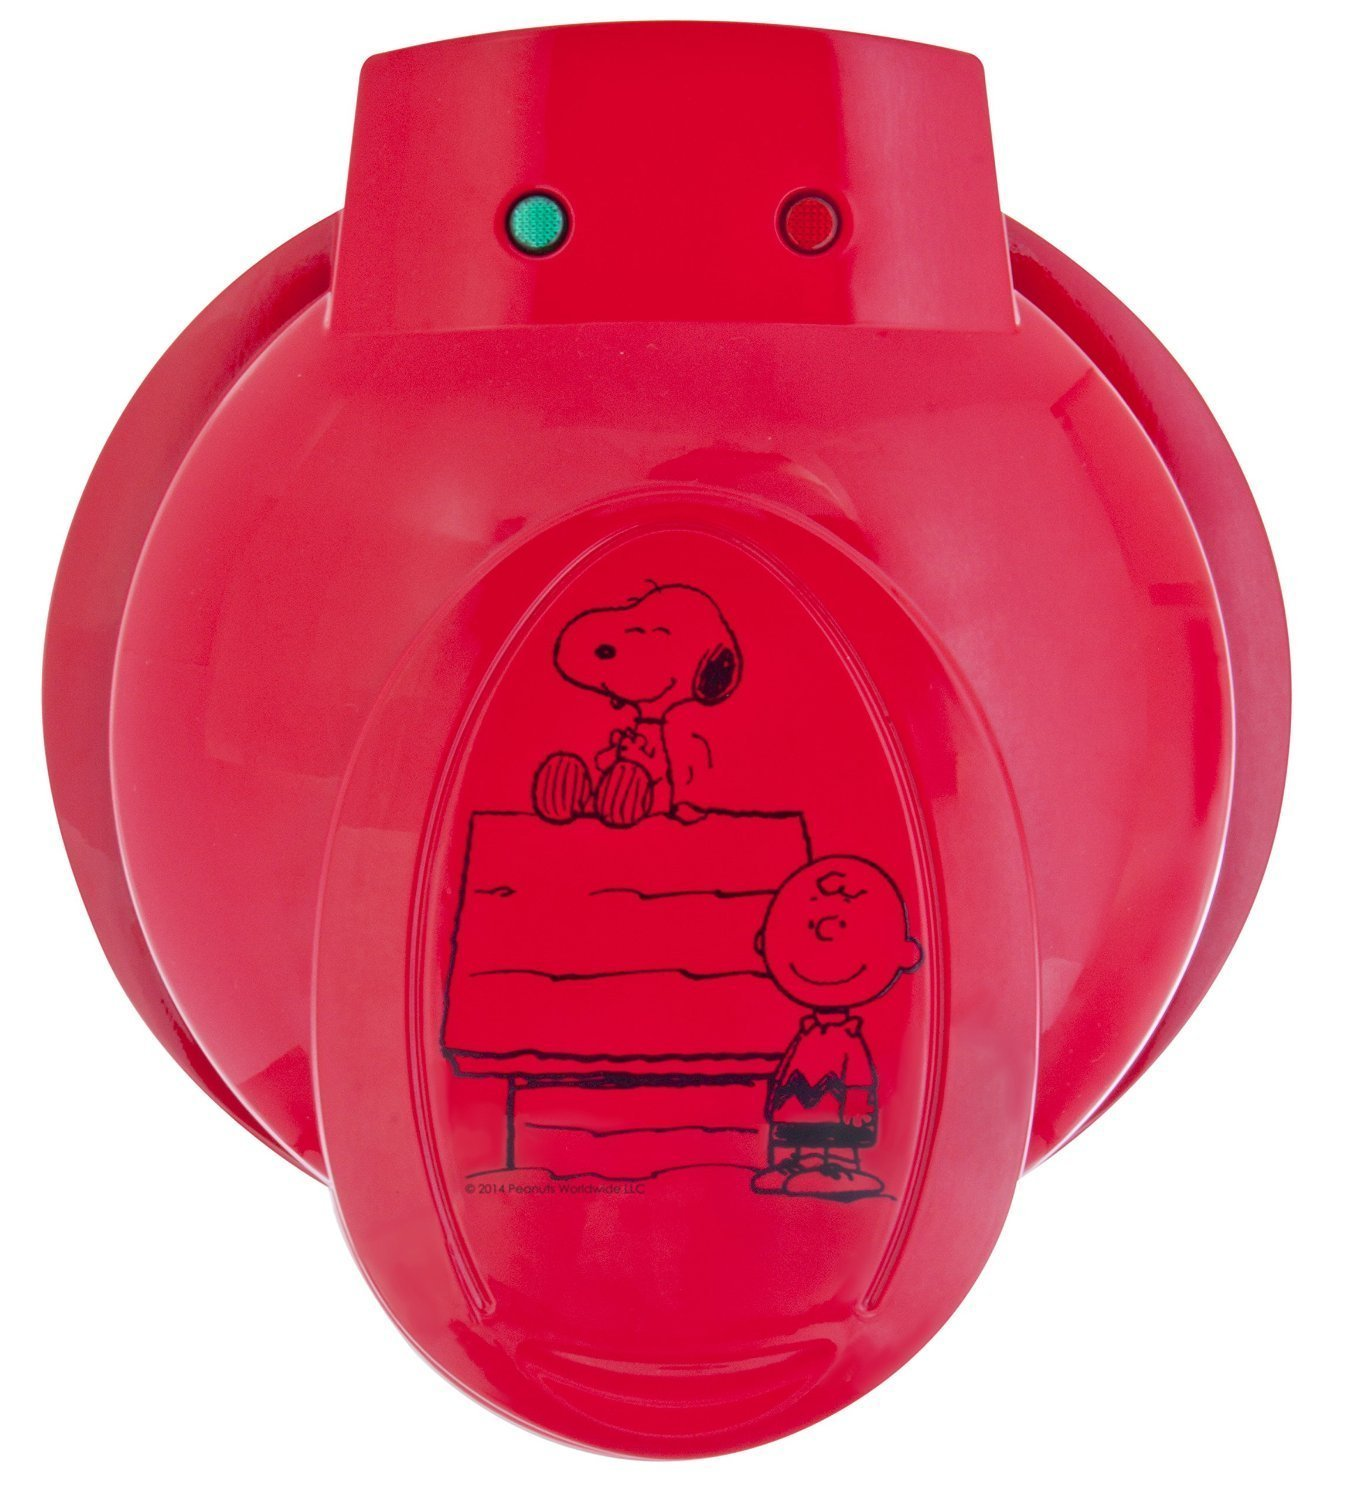 Smart Planet WM‐6S Peanuts Snoopy and Charlie Brown Waffle Maker, Red